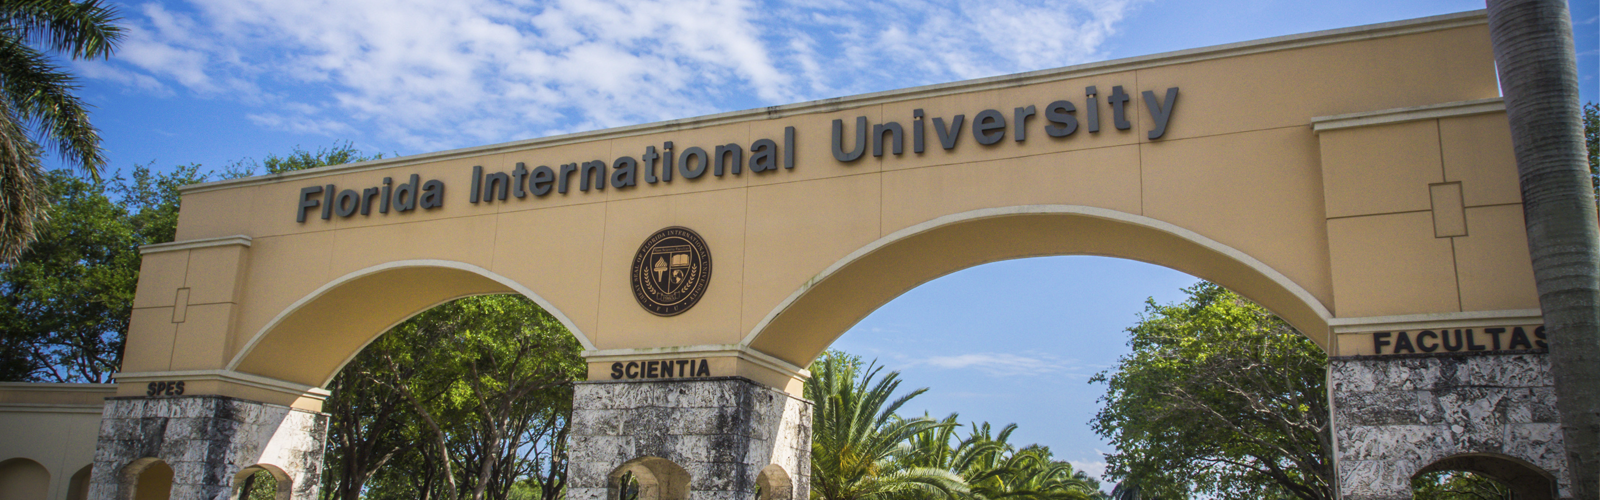 FIU Entrance image